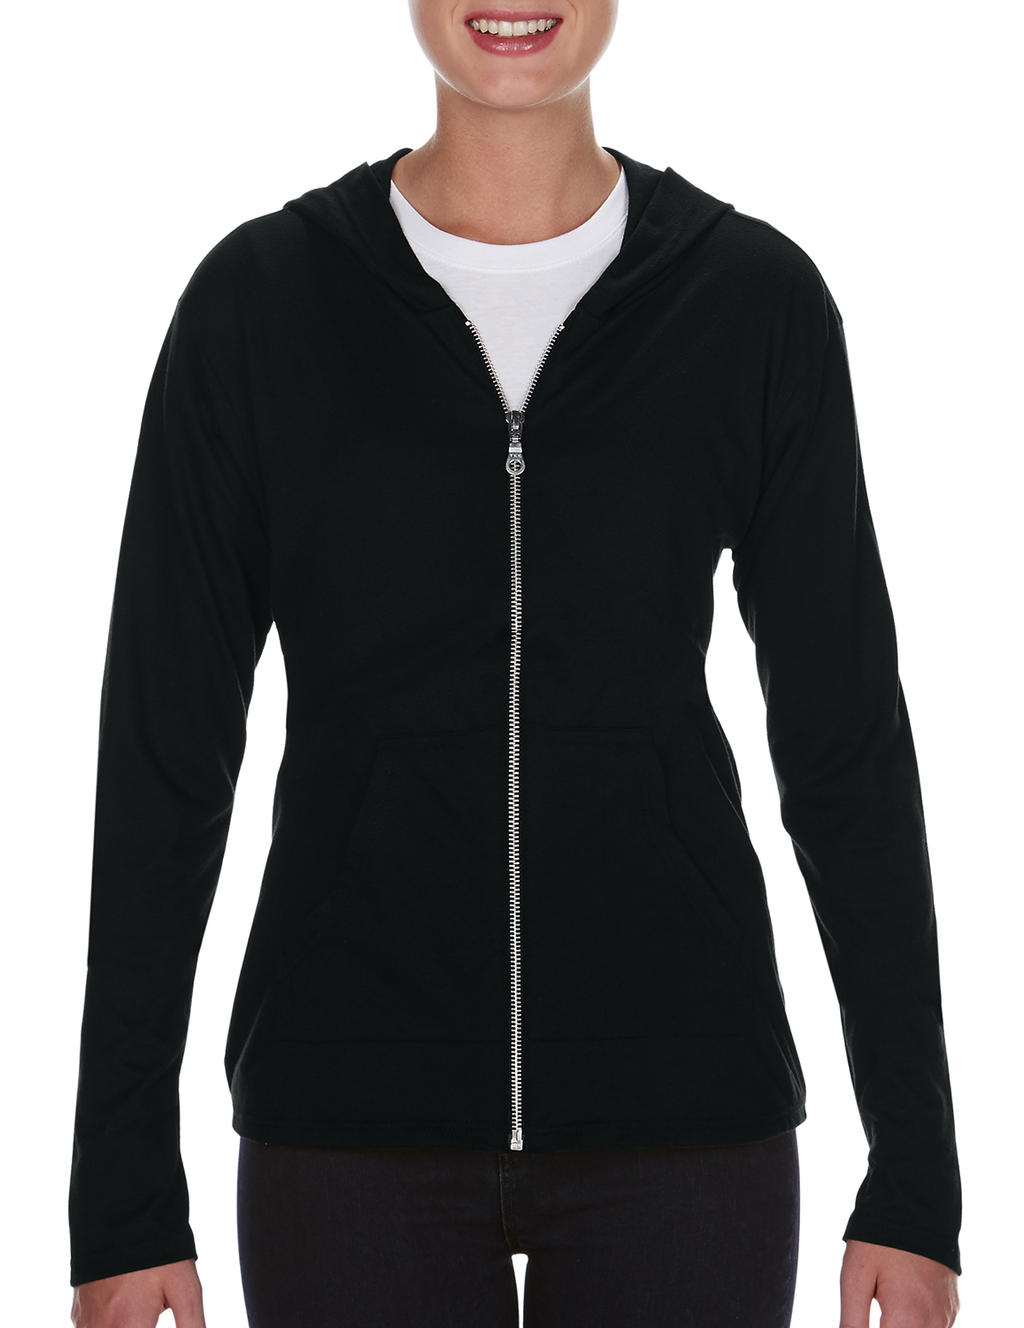 Anvil womens tri-blend full-zip hooded jacket zwart